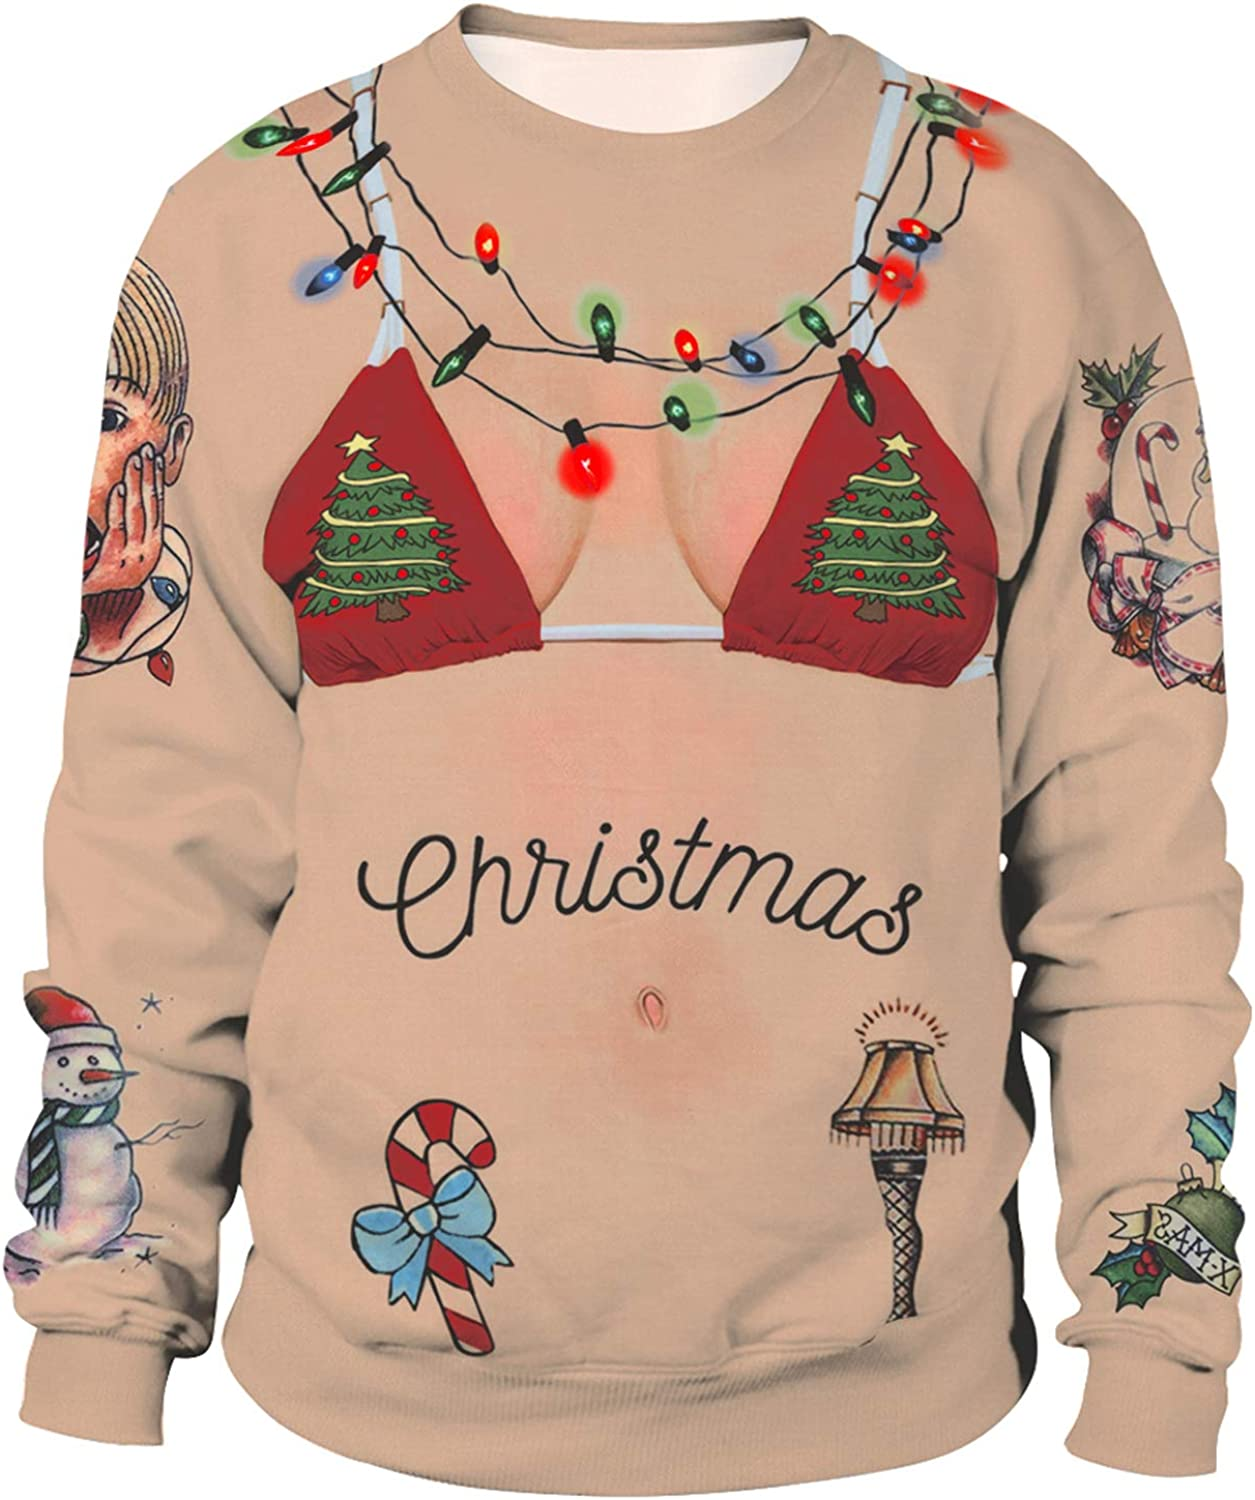 LHJ Unisex Ugly Christmas Sweater 3D Print Funny Xmas Pullover Sweatshirt